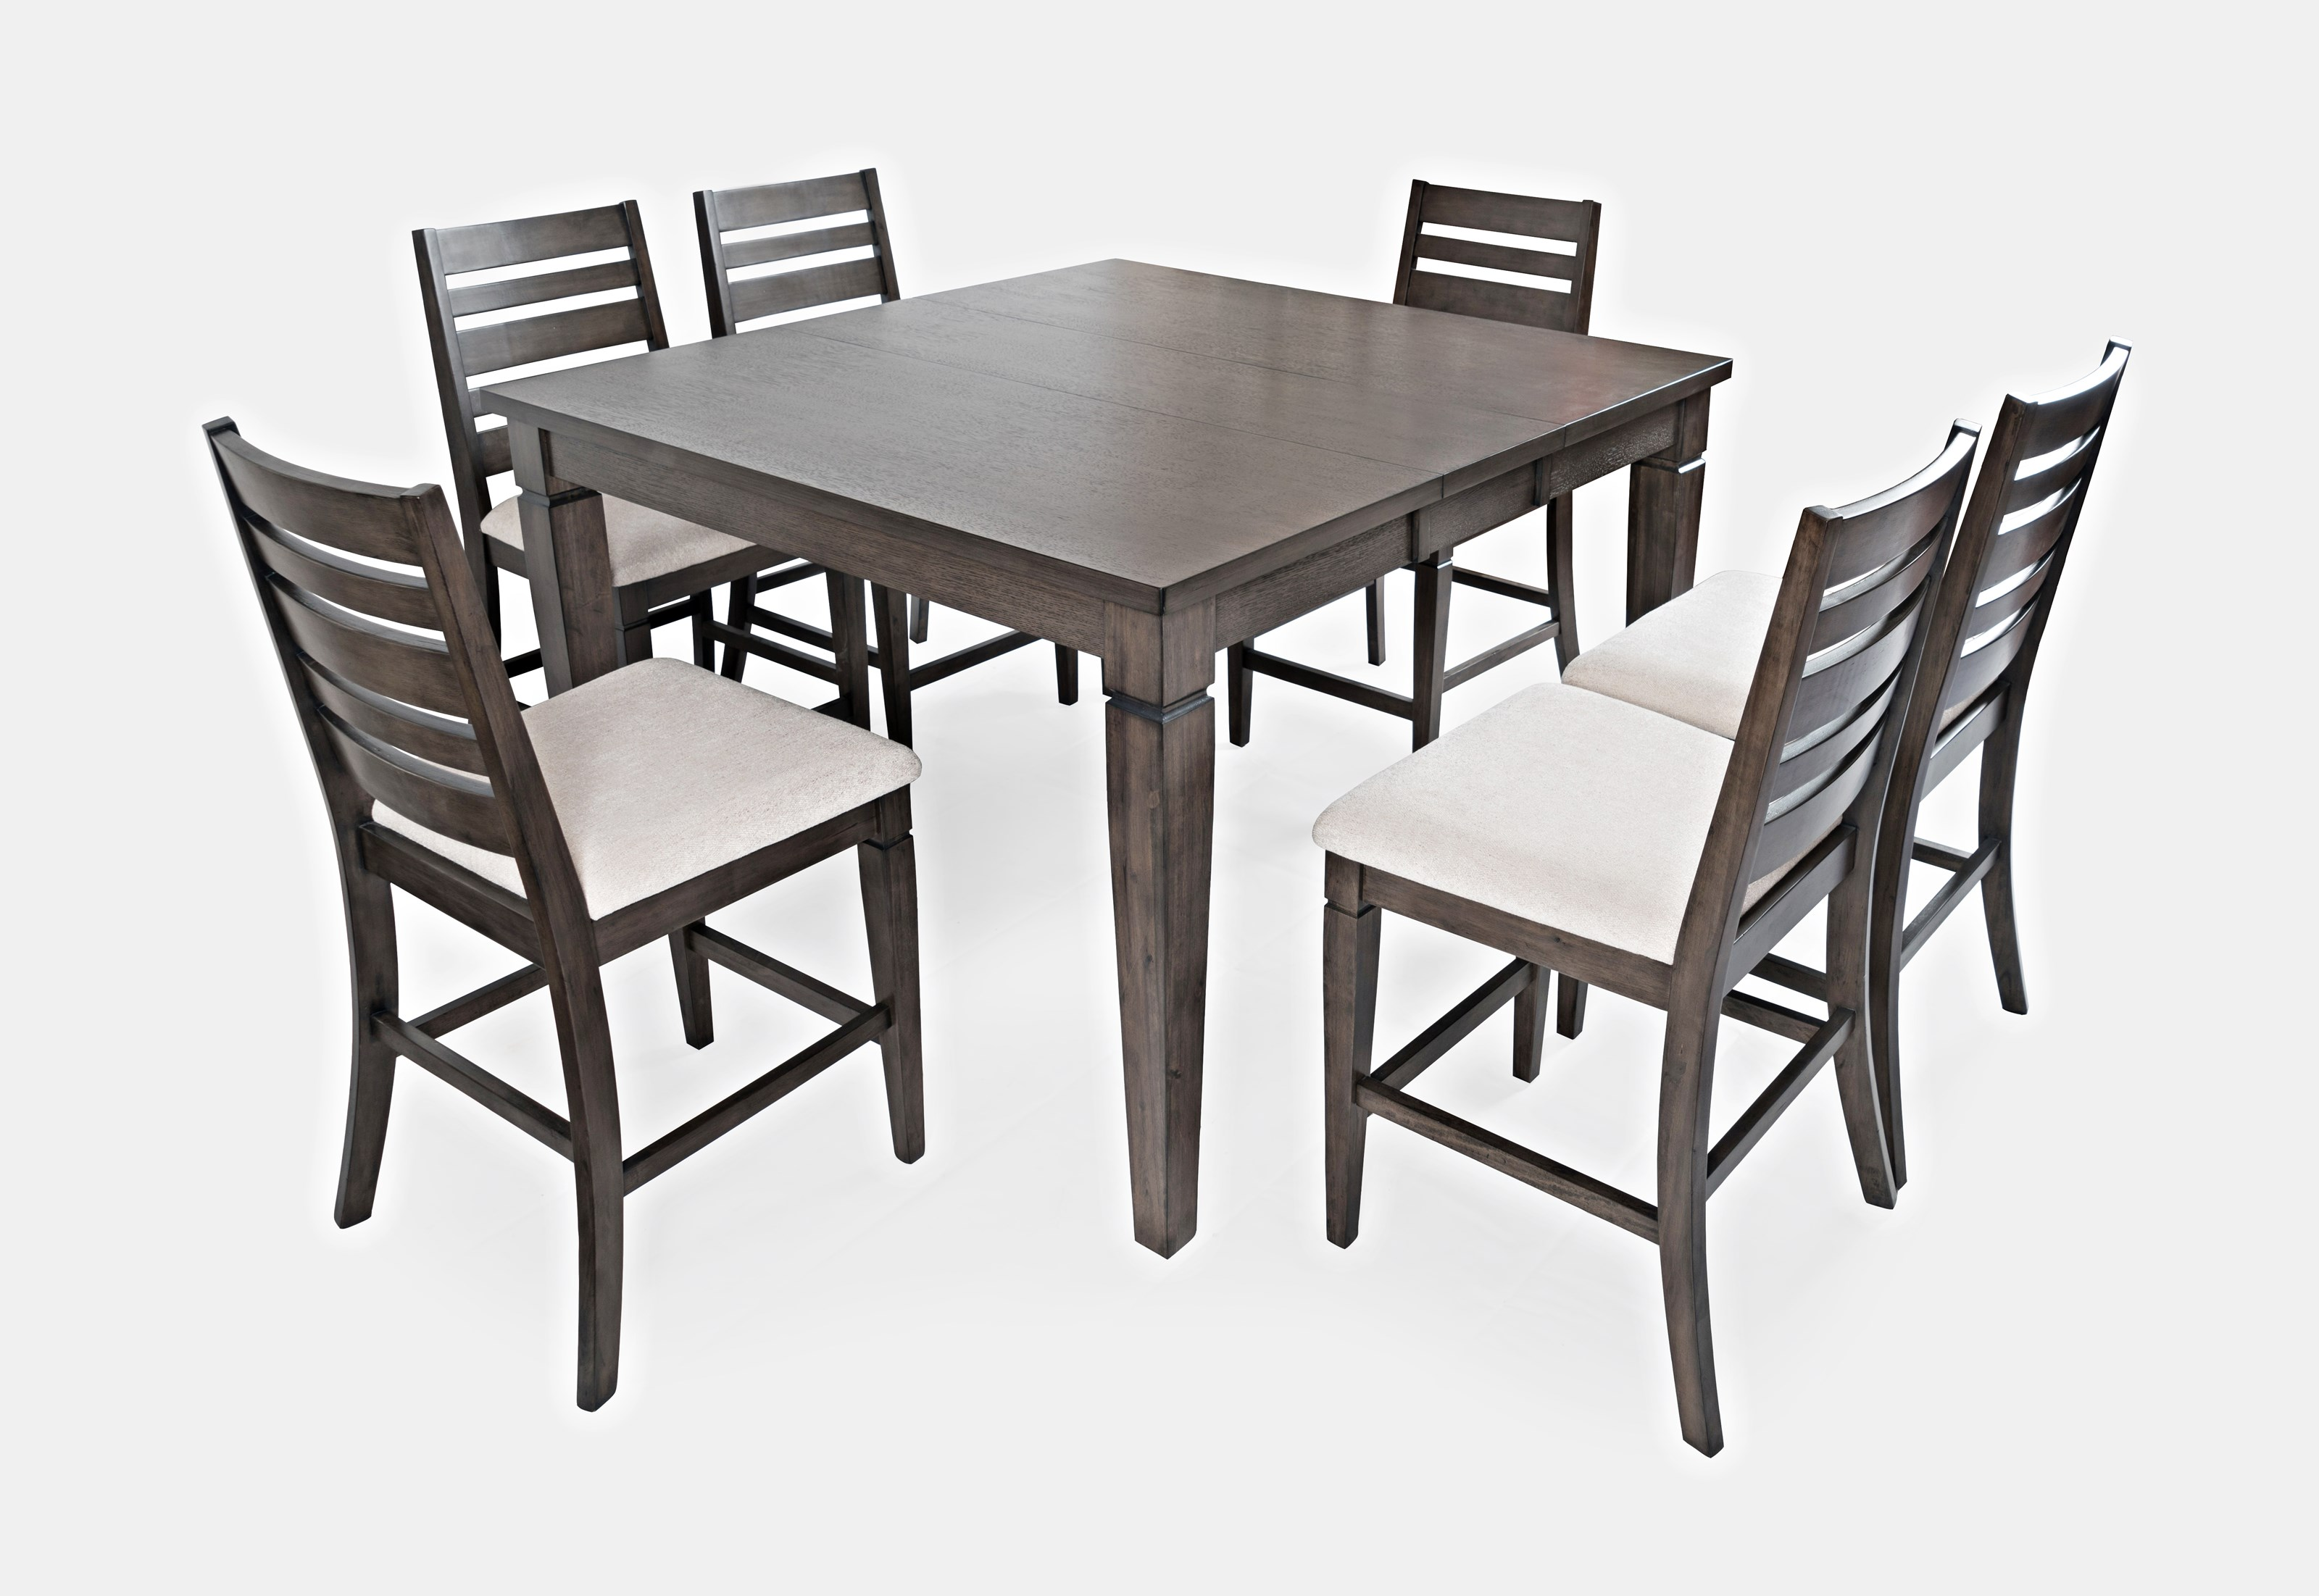 Lincoln Square Counter Height Table and Chair Set by Jofran at Jofran